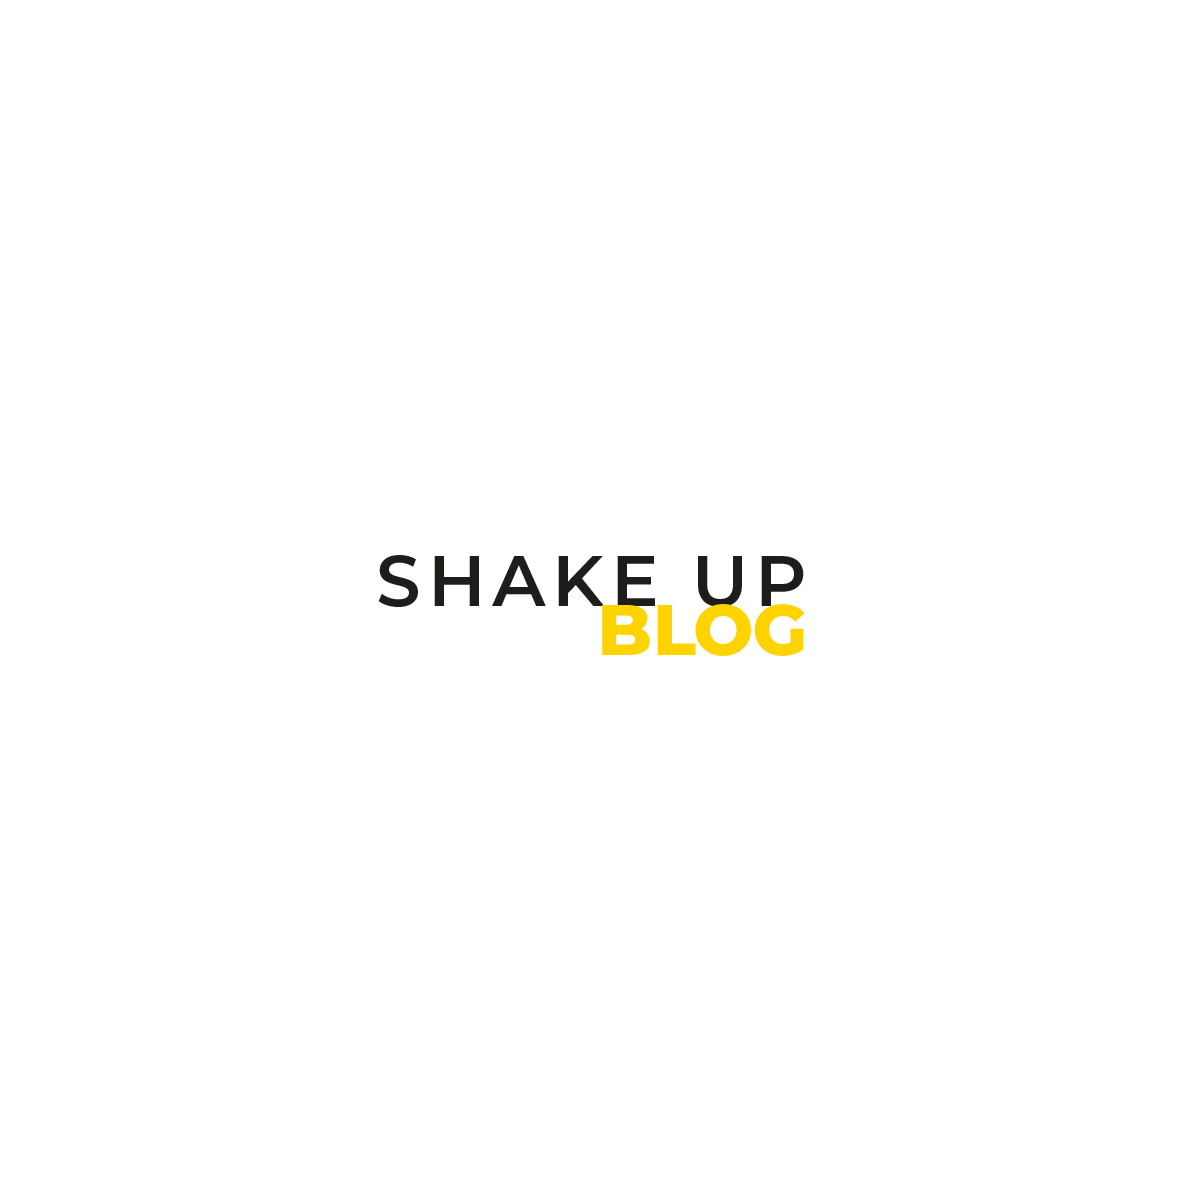 shake up Regroupa.agency